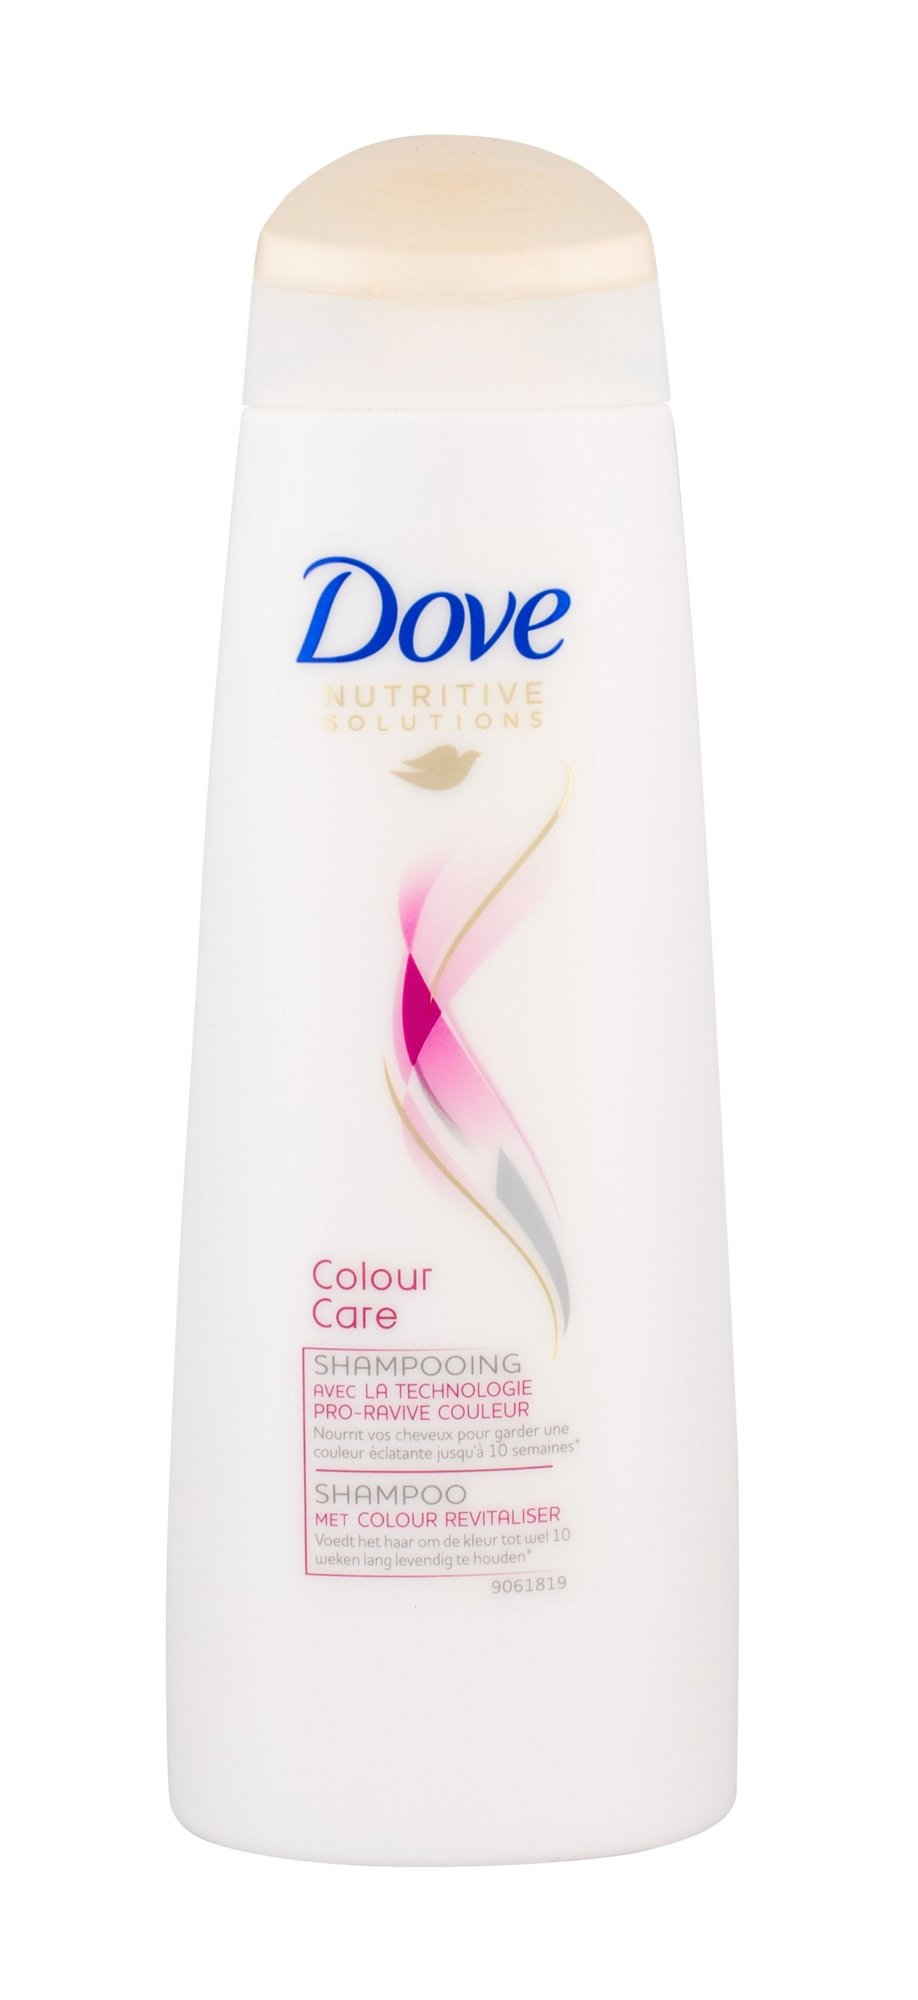 Dove Nutritive Solutions Cosmetic 250ml